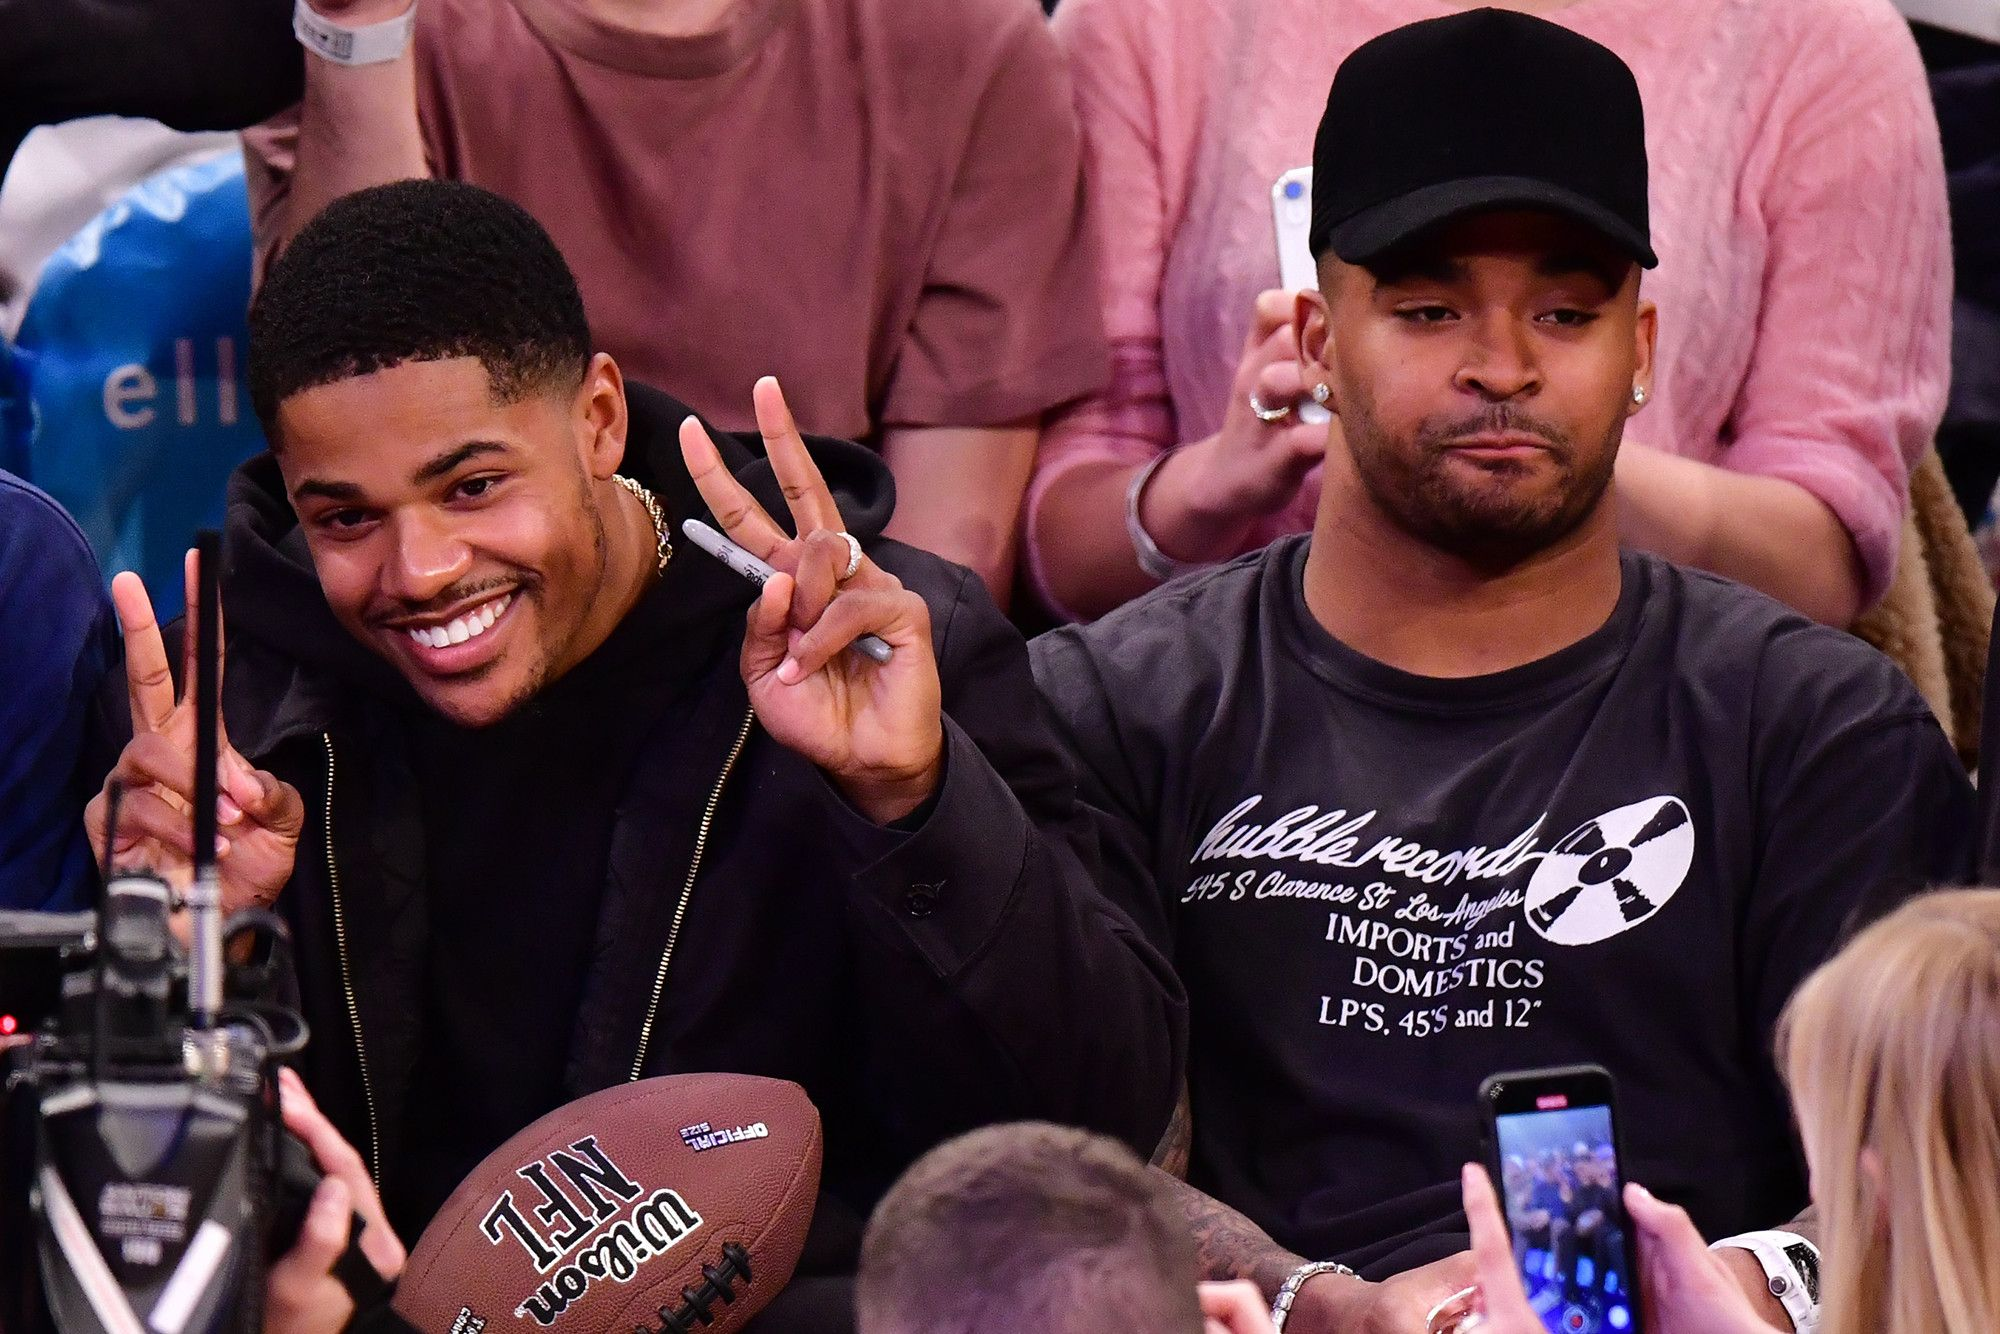 Jamal Adams Shades Knicks After Getting Ignored For Giants Stars National Football League News In 2020 National Basketball Association National Football League Nfl News